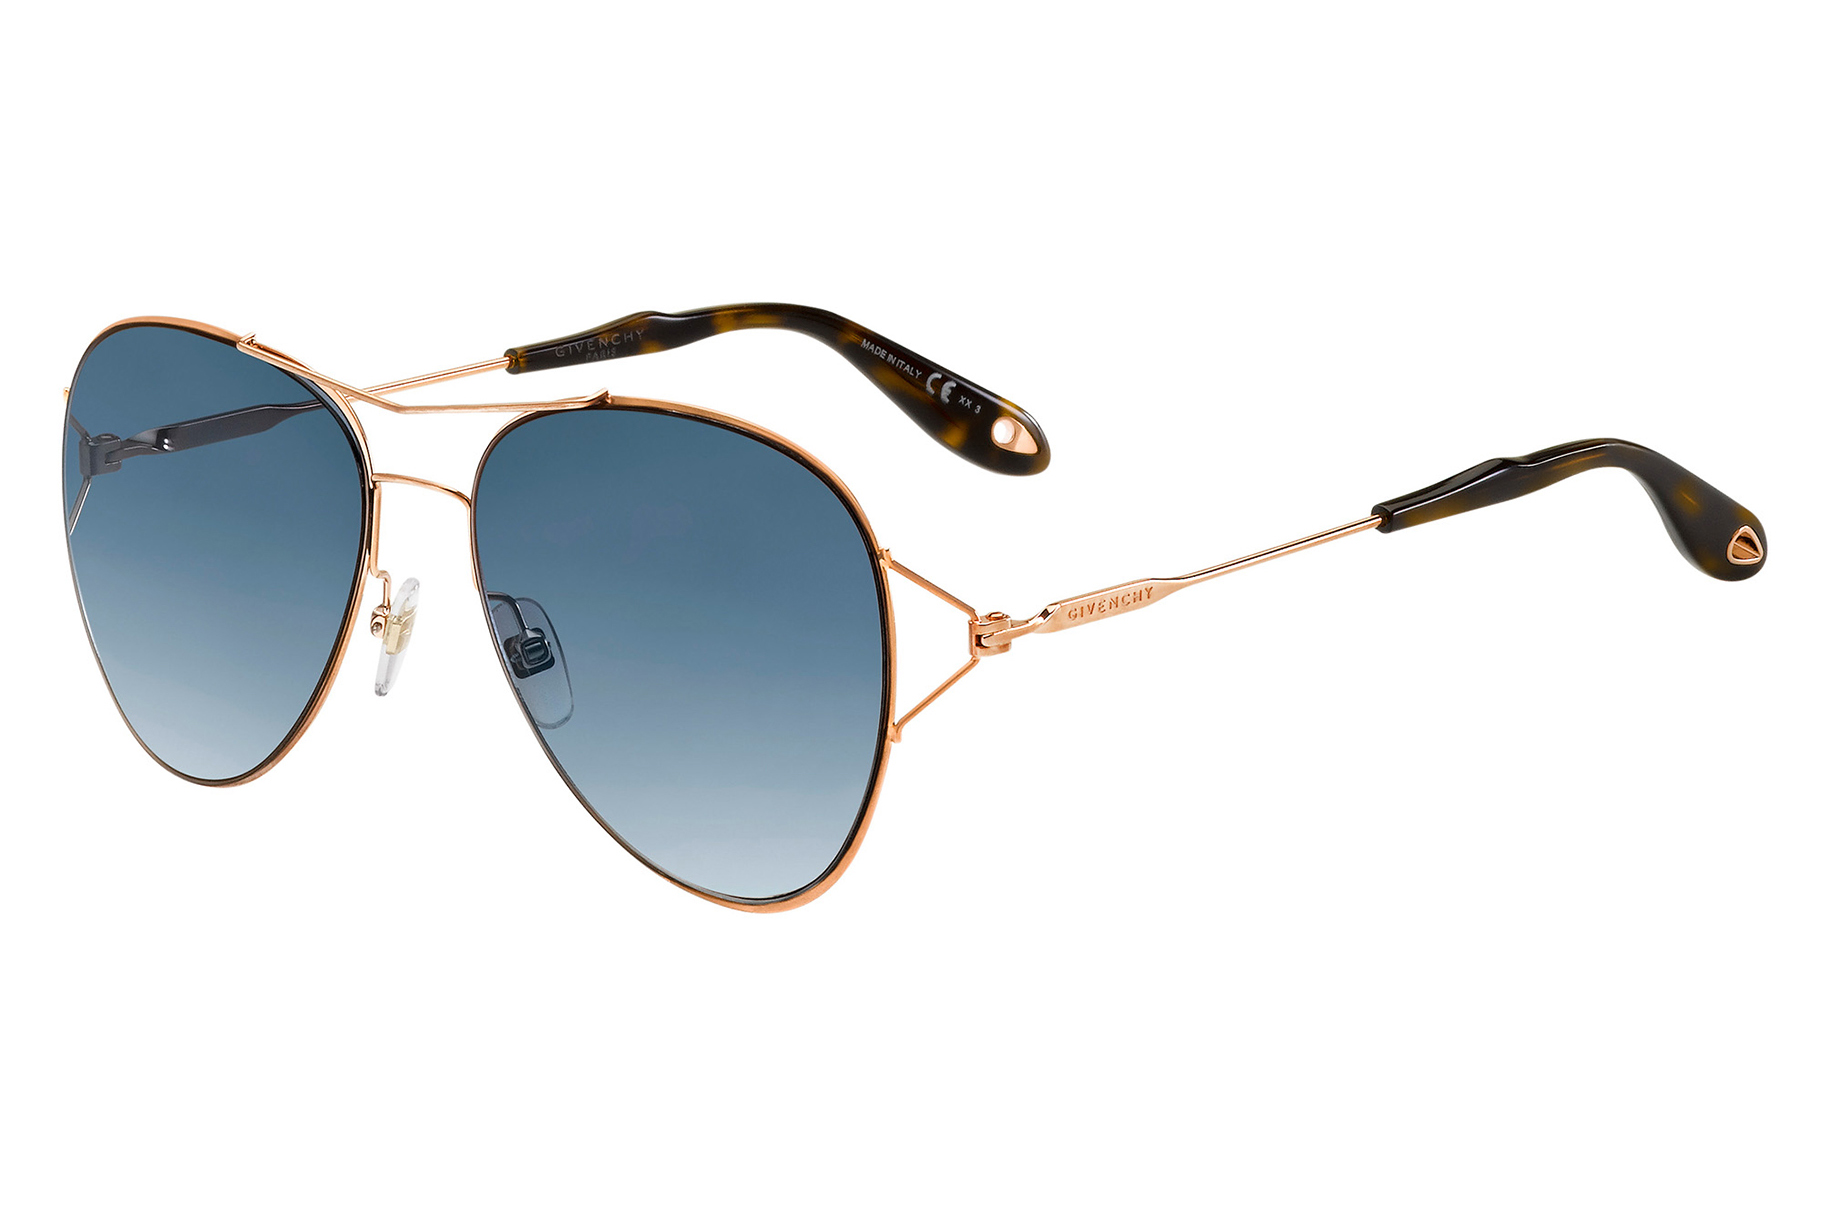 5164b2dd7448 Givenchy Sunglasses - product design · Givenchy Sunglasses - product design  ...